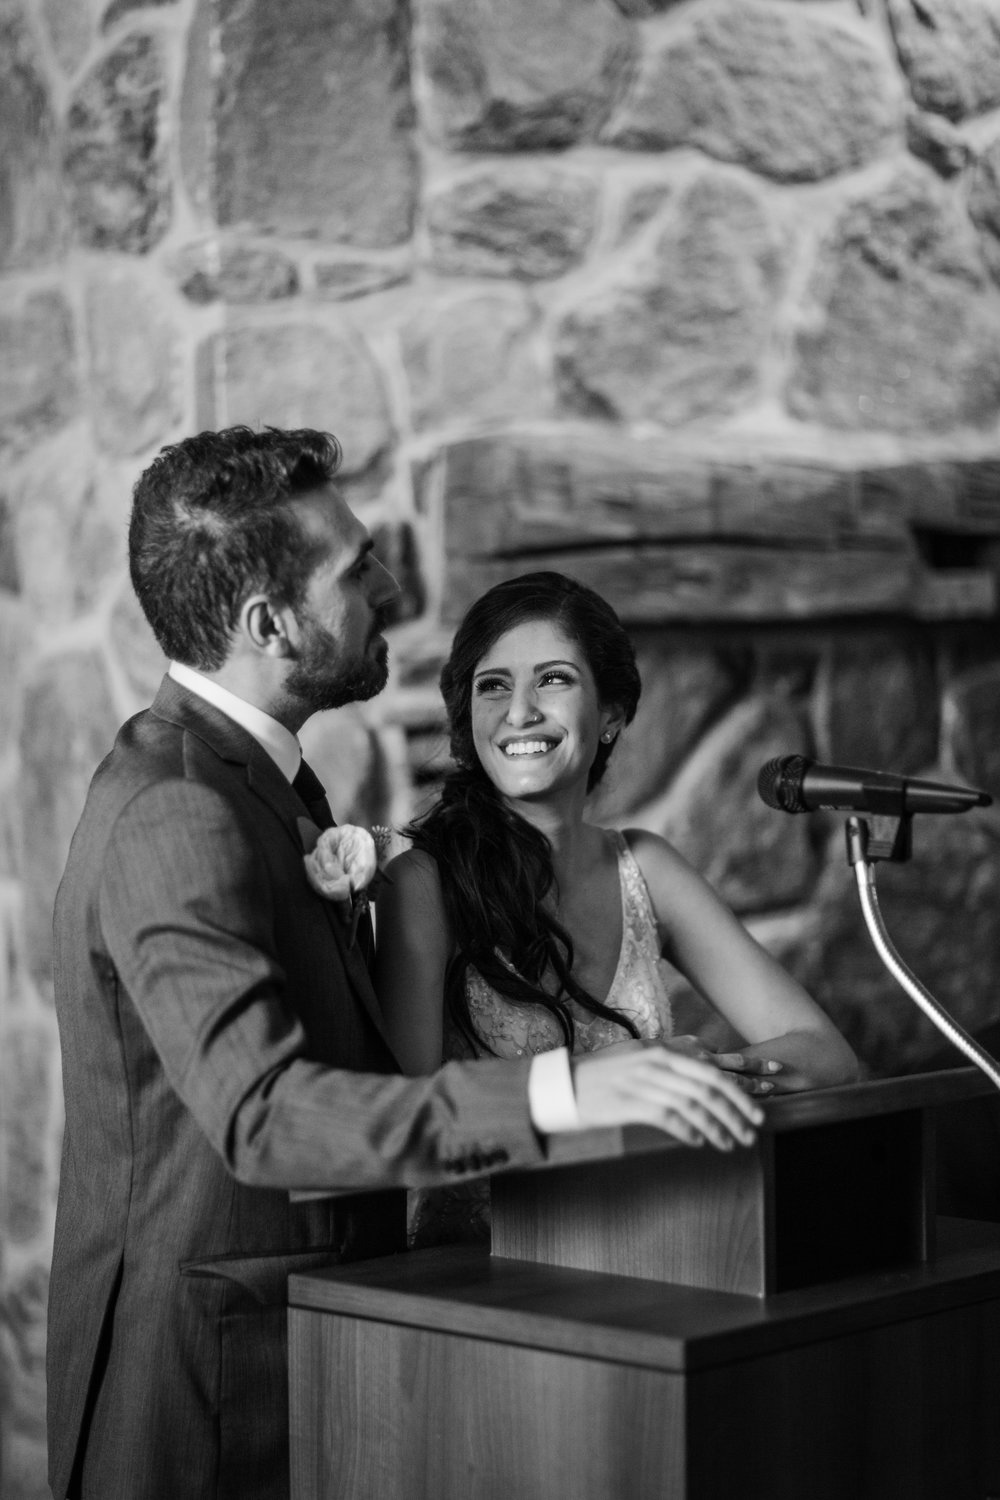 Amir-Golbazi-Danielle-Giroux-Photography_Toronto-Wedding_Cedarwood_Rachel-Paul_718.jpg